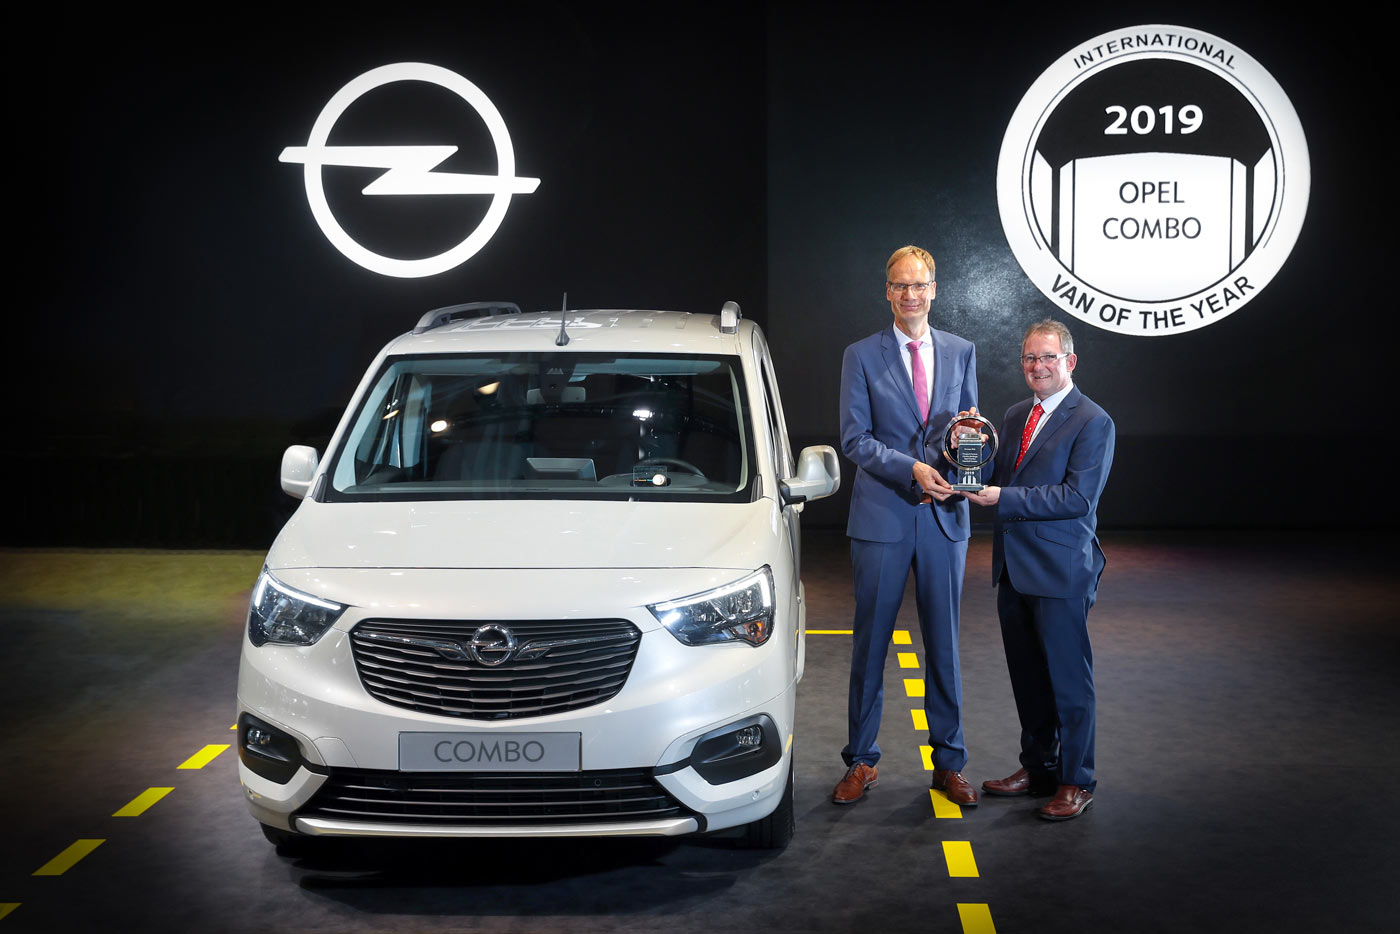 Opel Combo Cargo Van of the Year